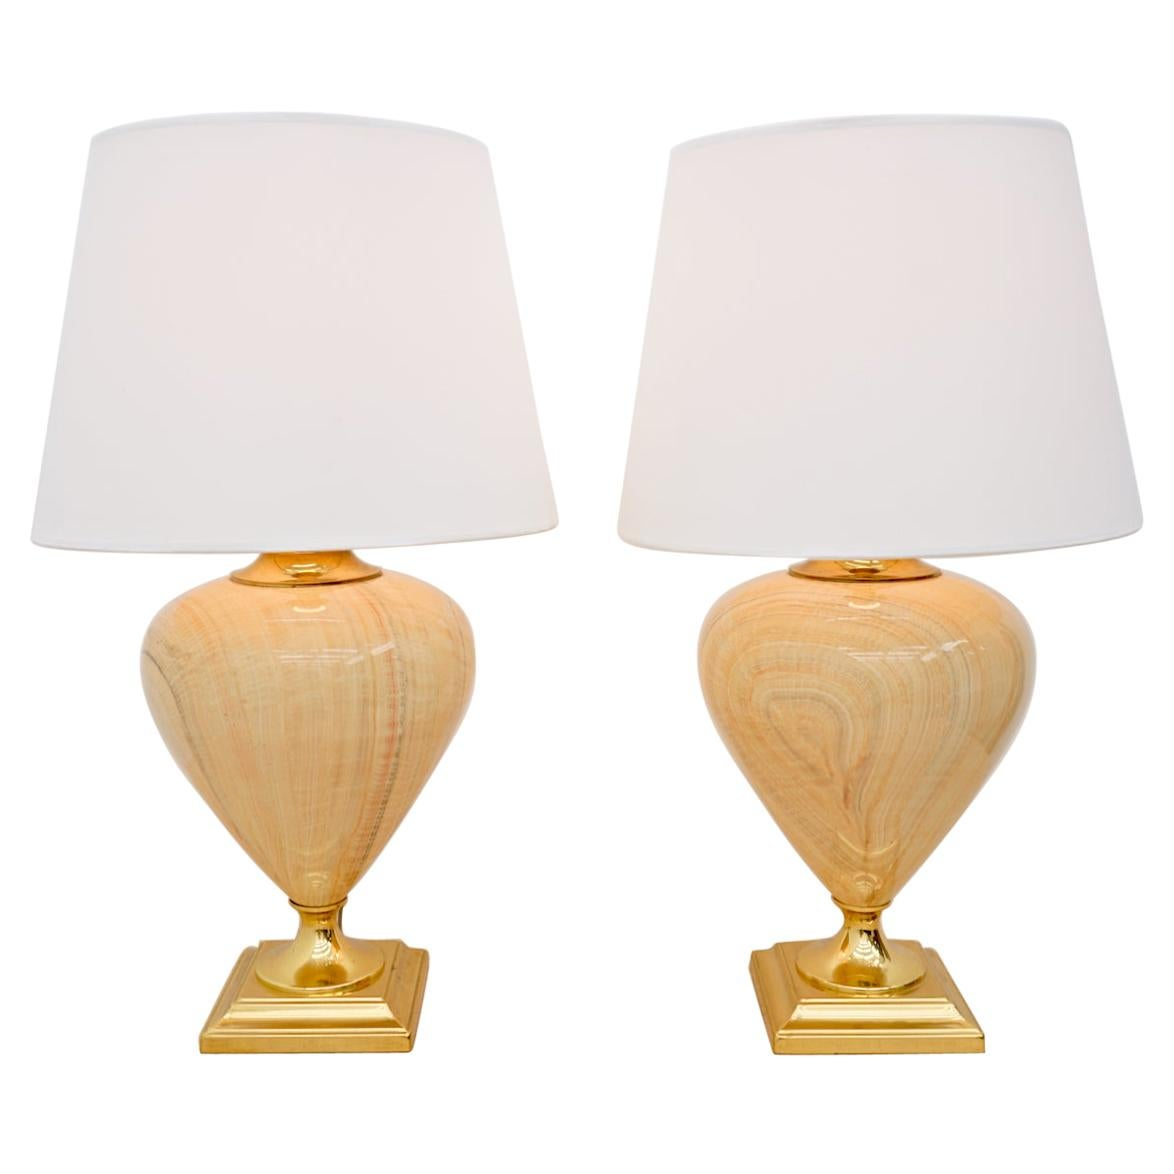 Pair of Elegant Table Lamps by Maison Le Dauphin, France, 1970s